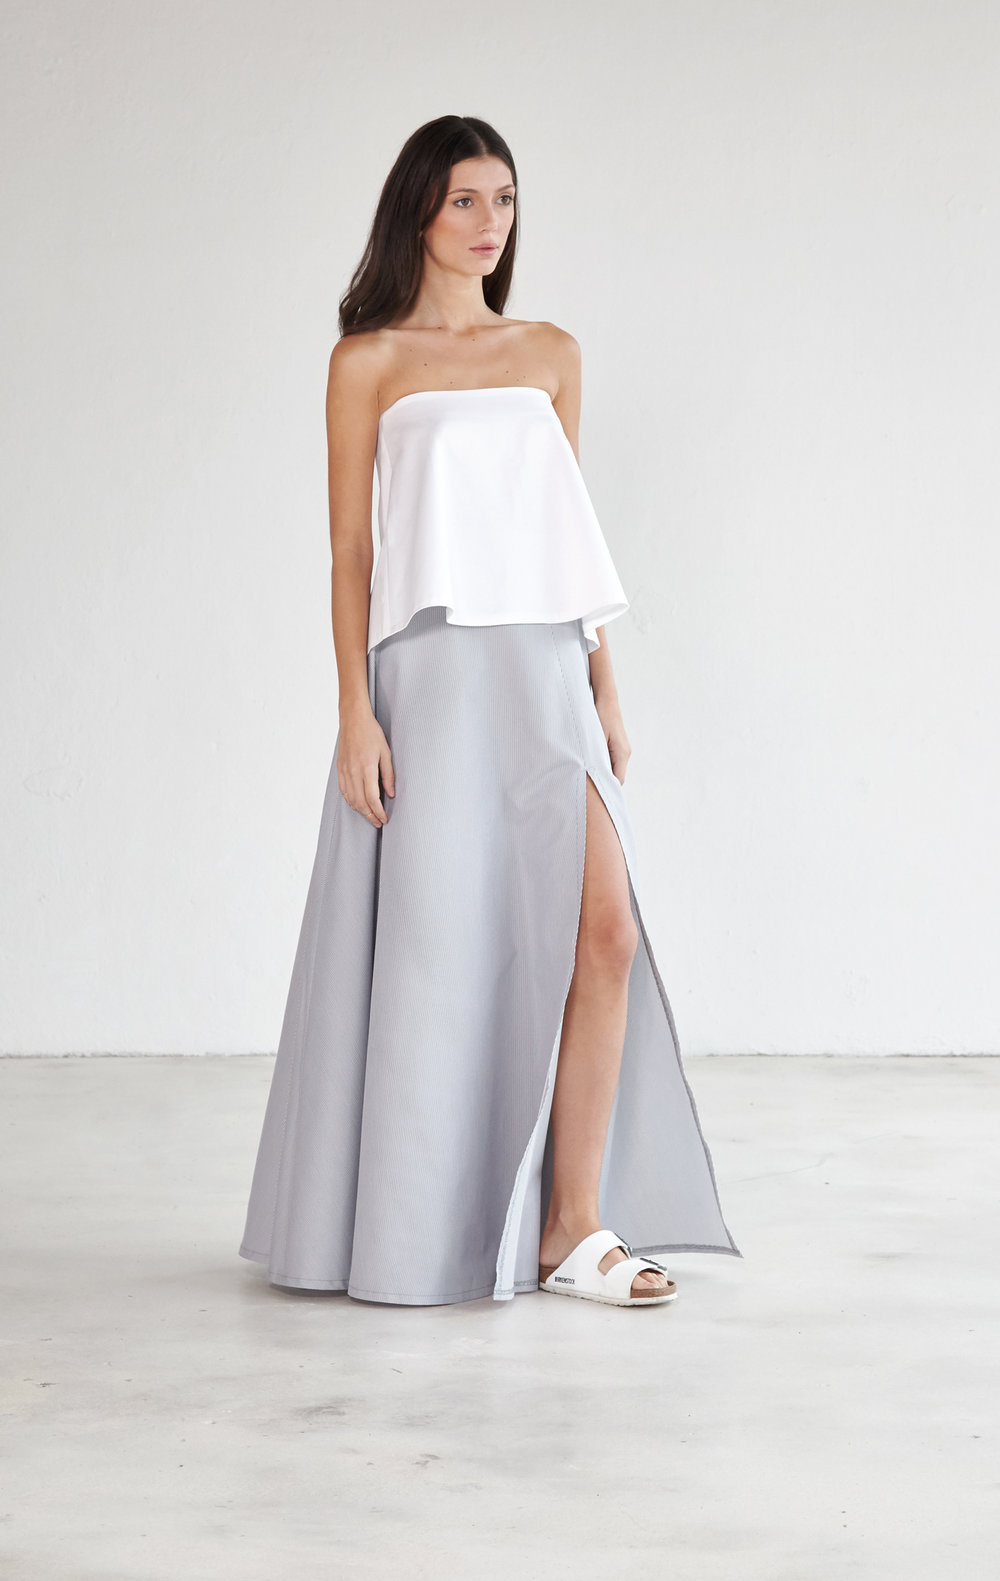 ERIKA_SS16_COLLECTION04200-finalsm.jpg